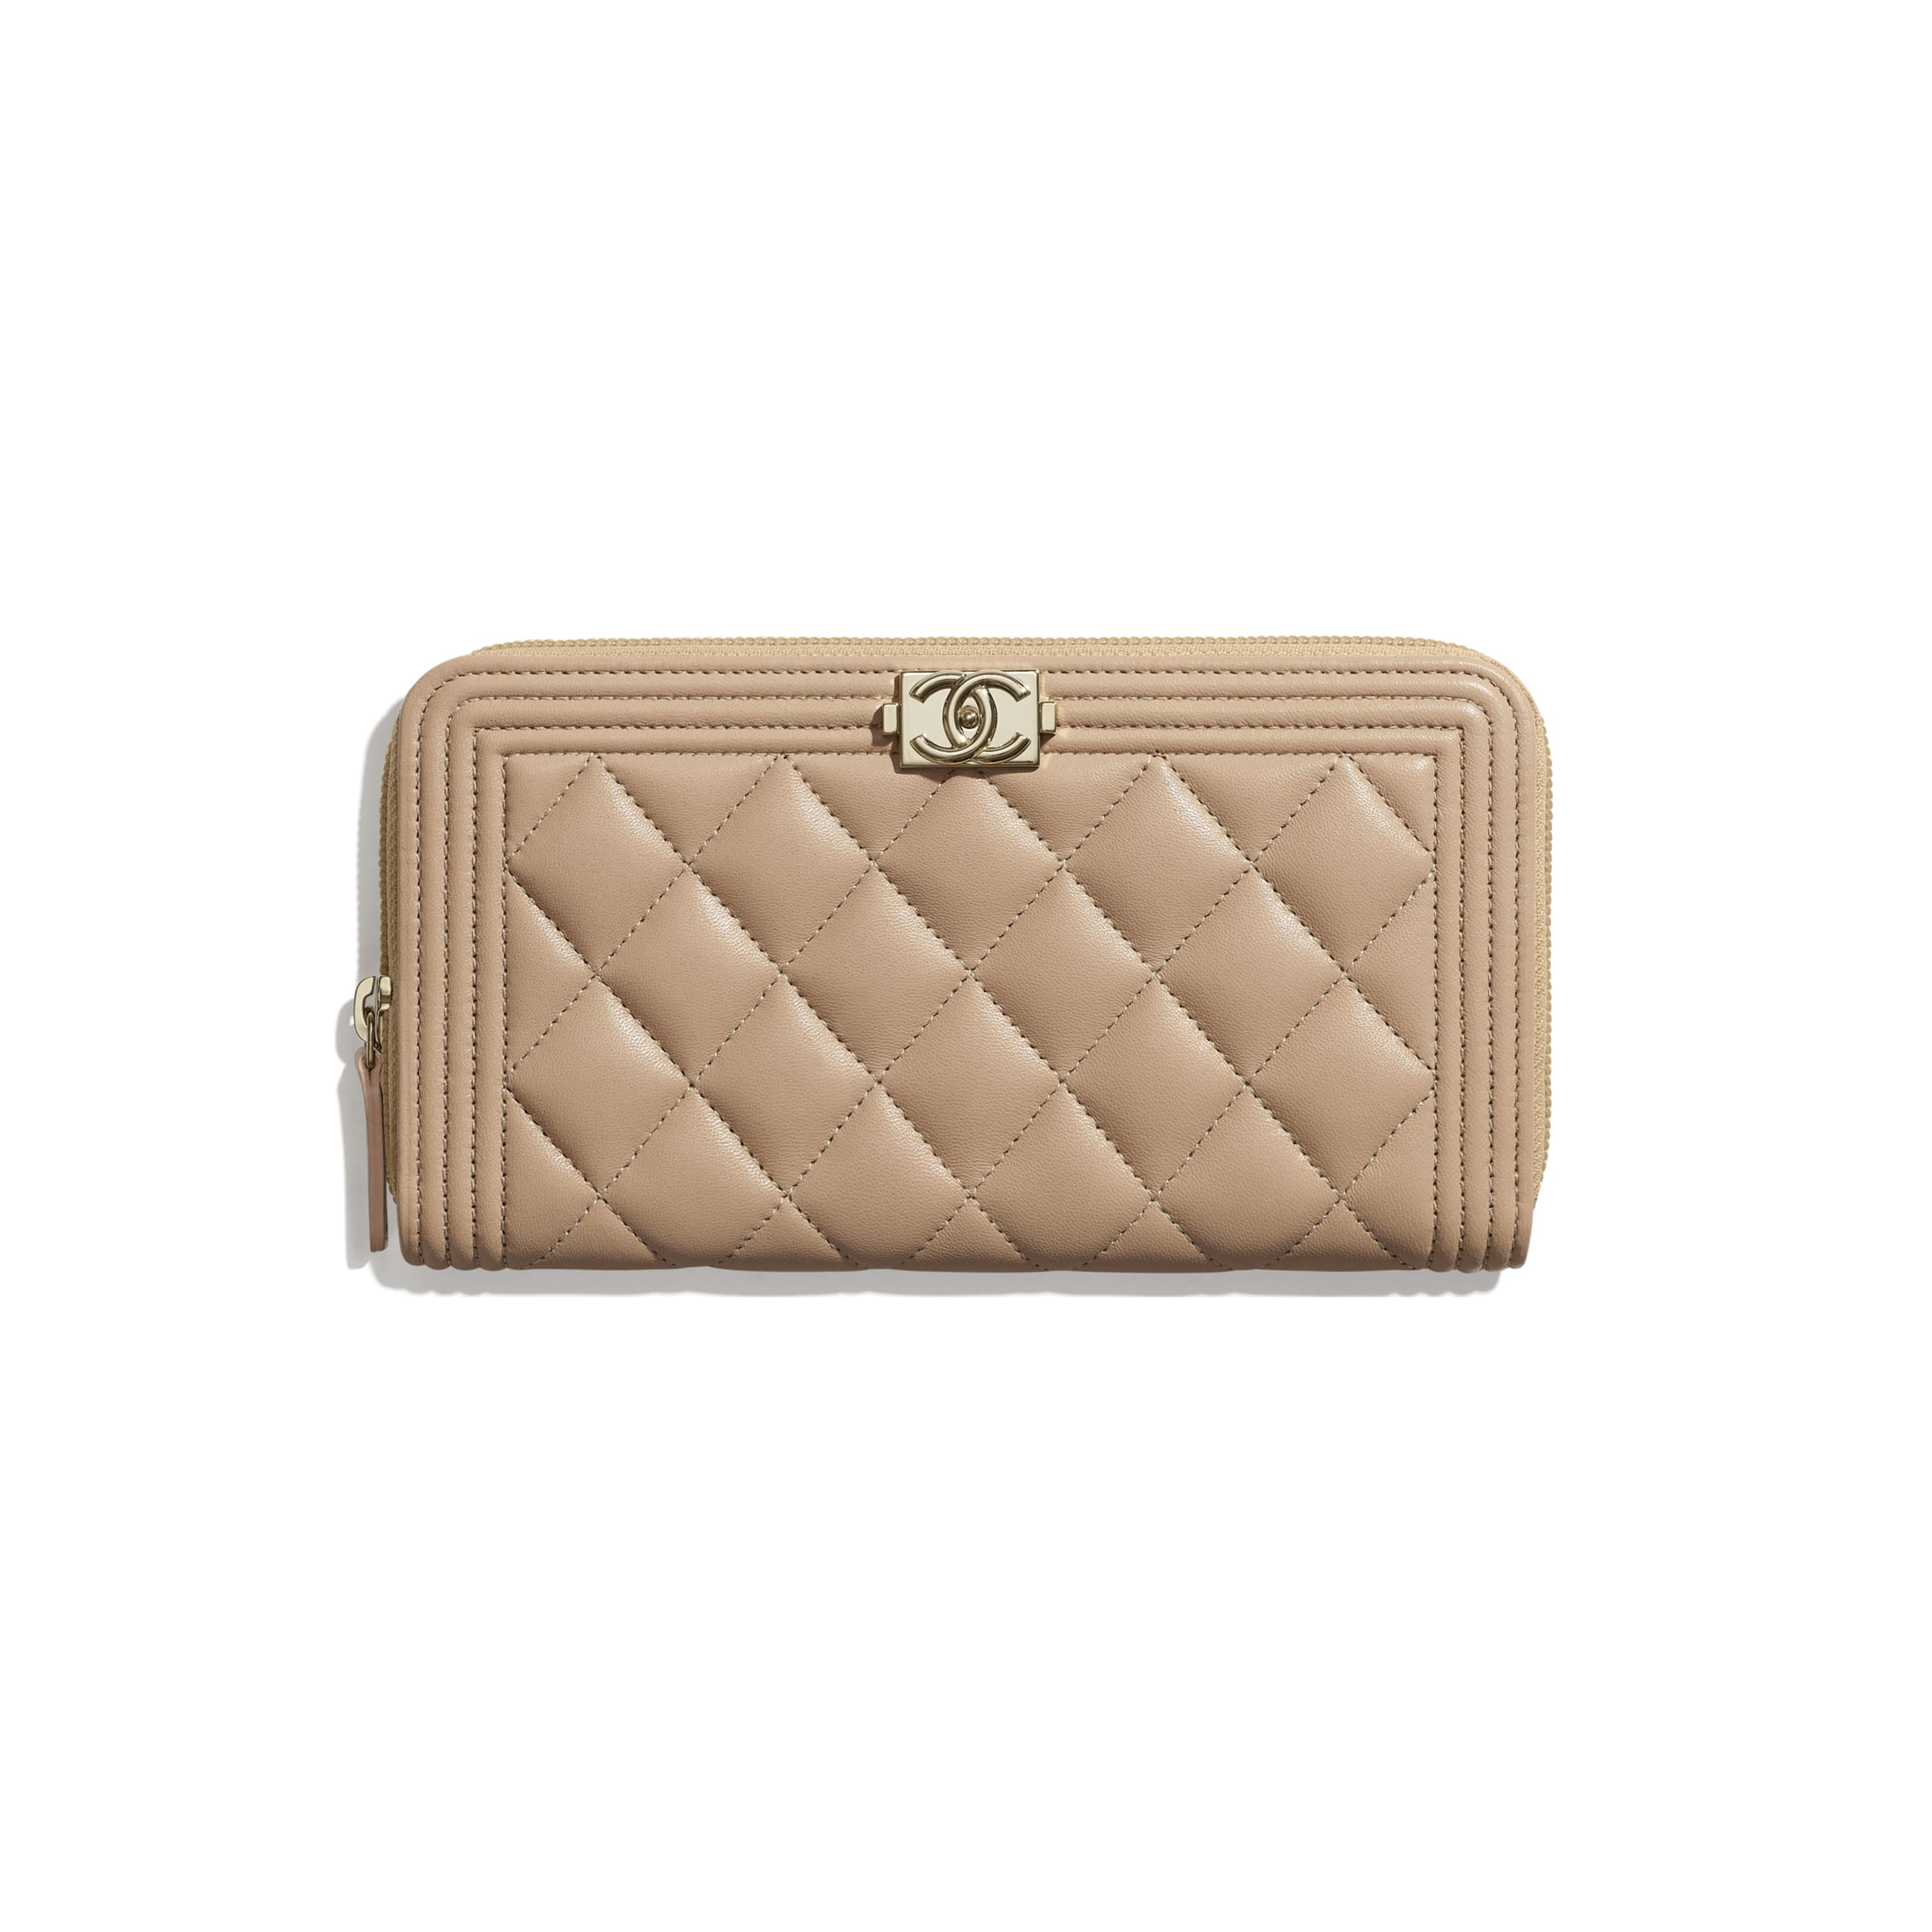 BOY CHANEL Long Zipped Wallet - Beige - Lambskin - CHANEL - Default view - see standard sized version